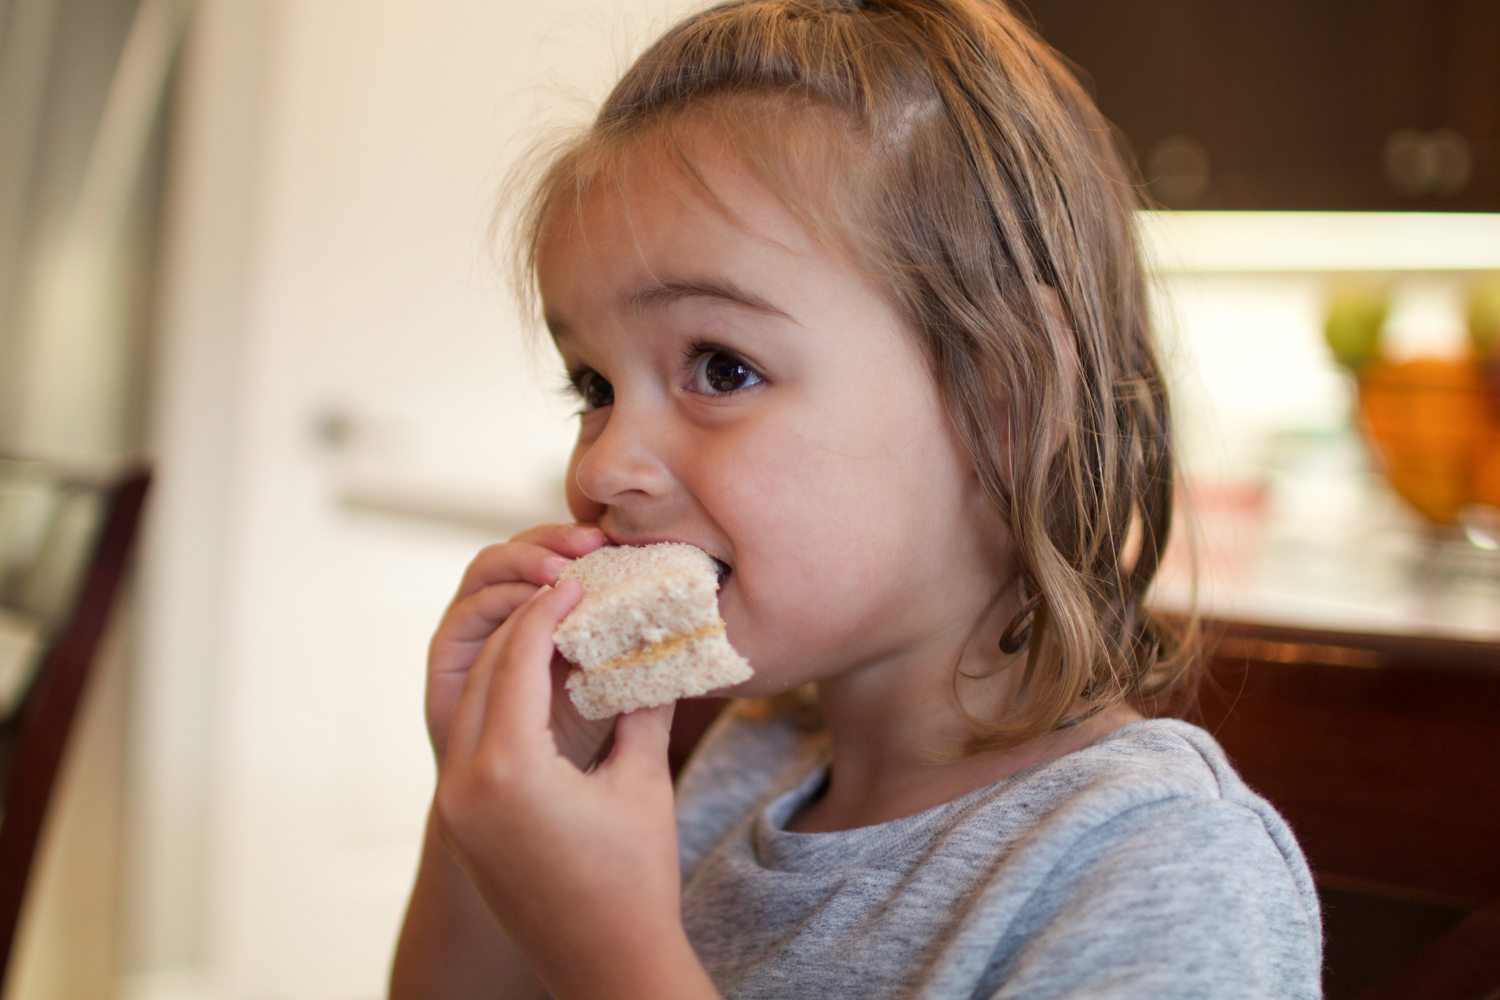 toddler eating sandwich